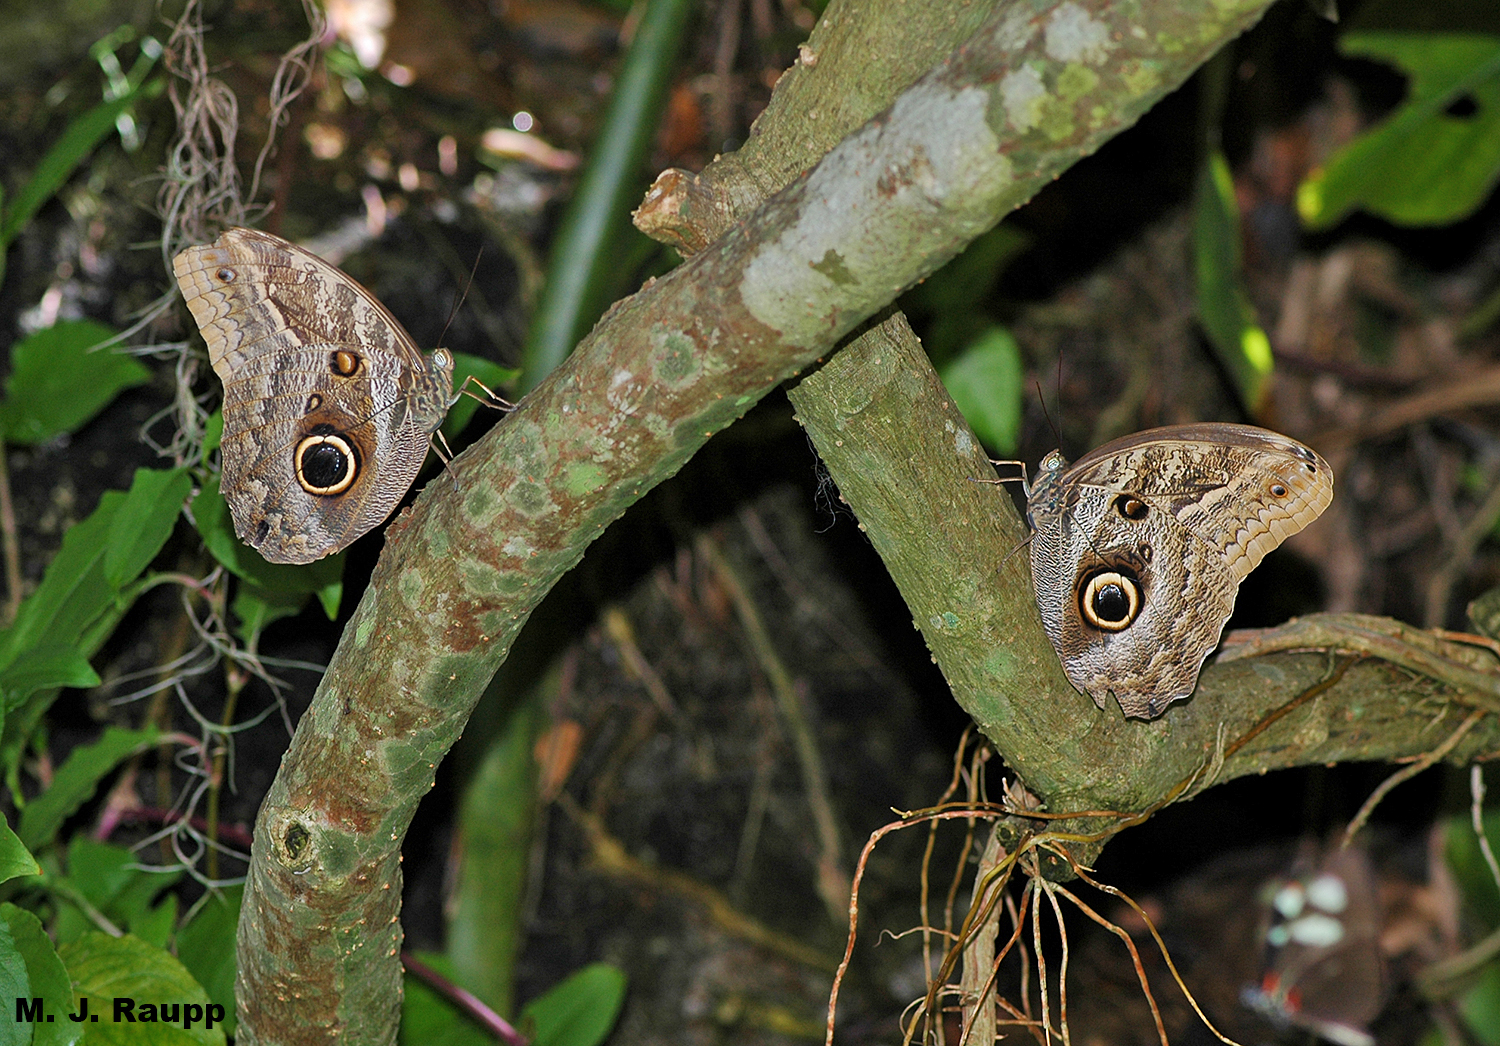 This pair of owl butterflies might make a hungry predator turn back and run.